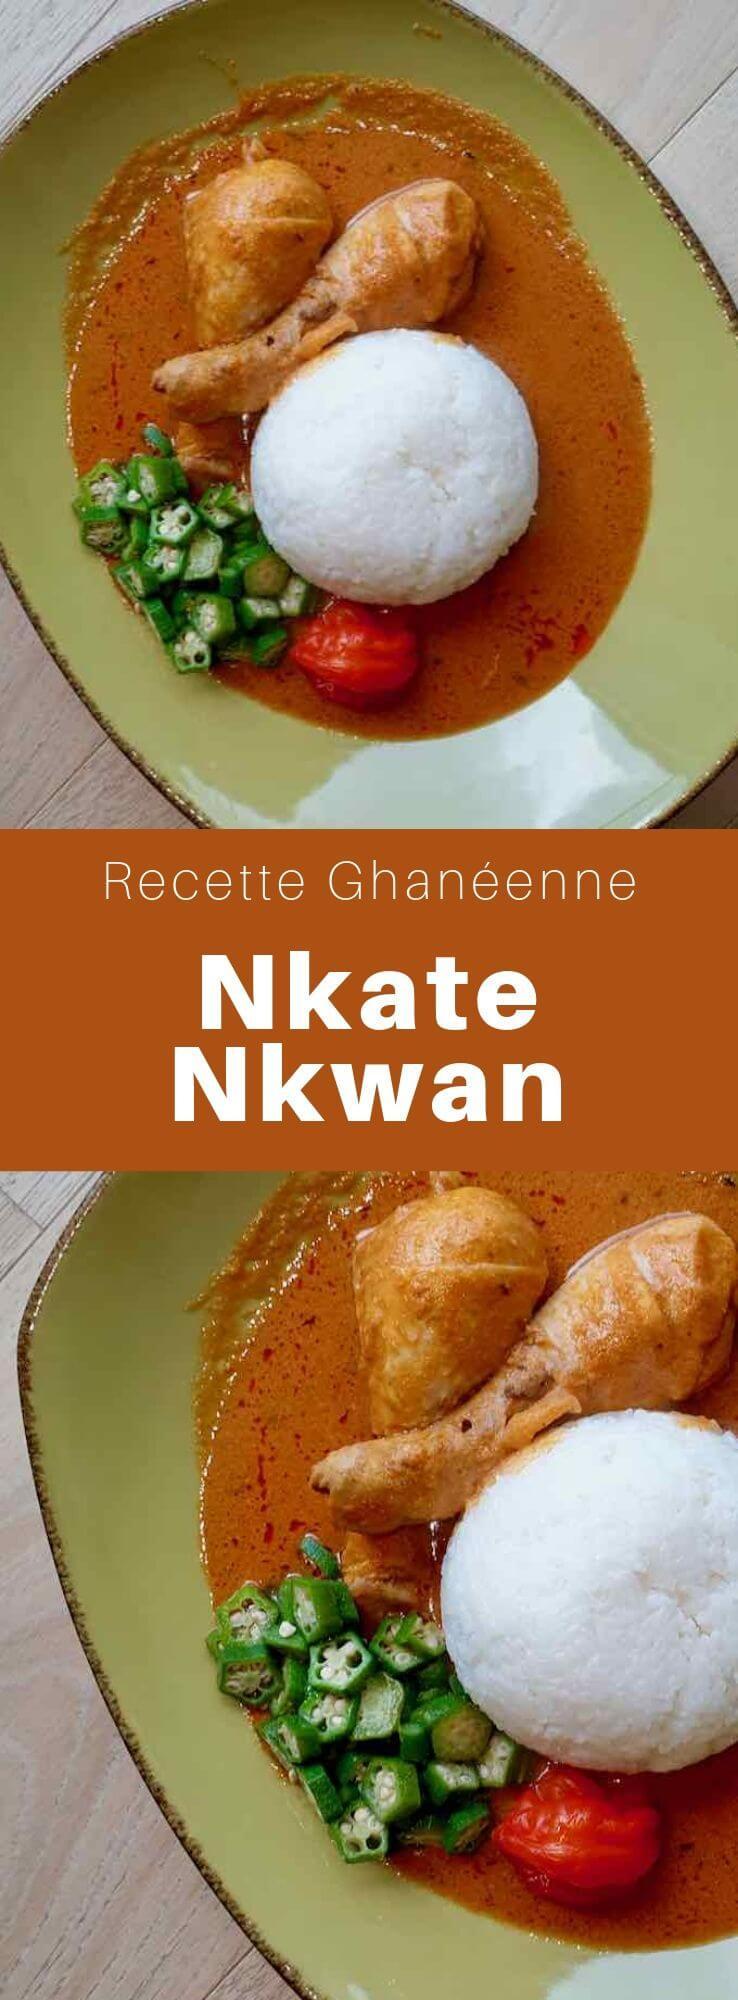 Le nkate nkwan, un des plats nationaux du Ghana, est une soupe à base d'arachides, également appelée peanut butter soup, peanut or groundnut soup. #Ghana #Afrique #AfriqueDeLouest #RecetteAfricaine #CuisineAfricaine #CuisineDuMonde #196flavors